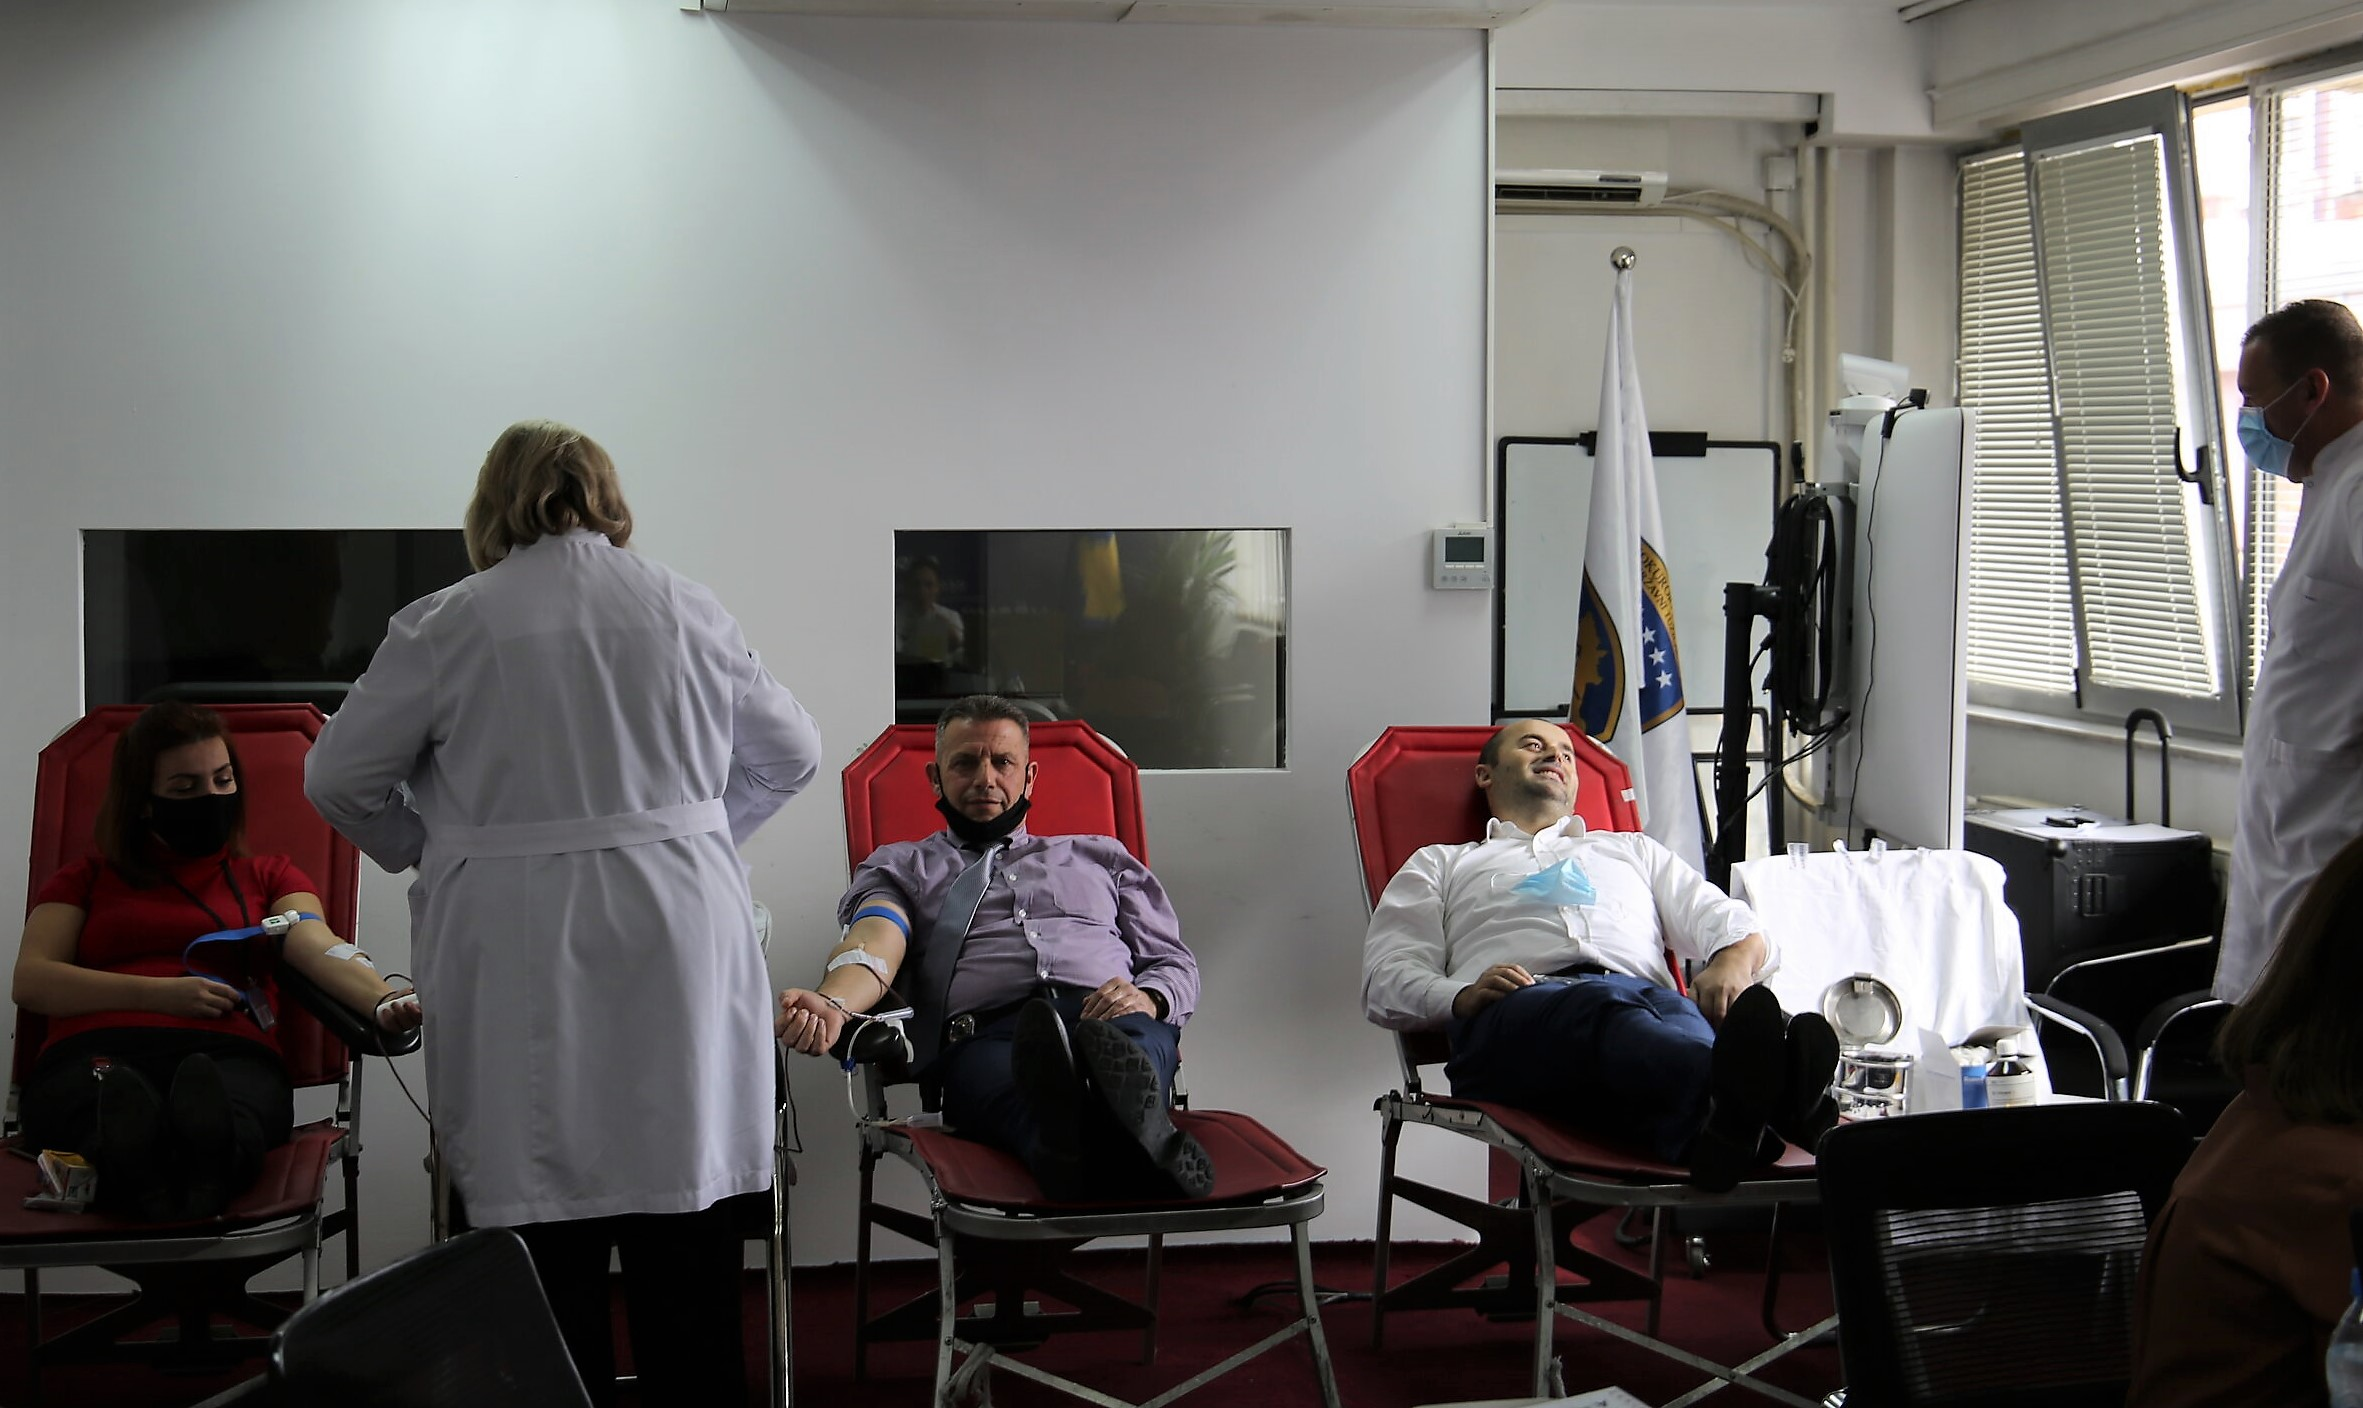 A voluntary blood donation action was held in the prosecutorial system